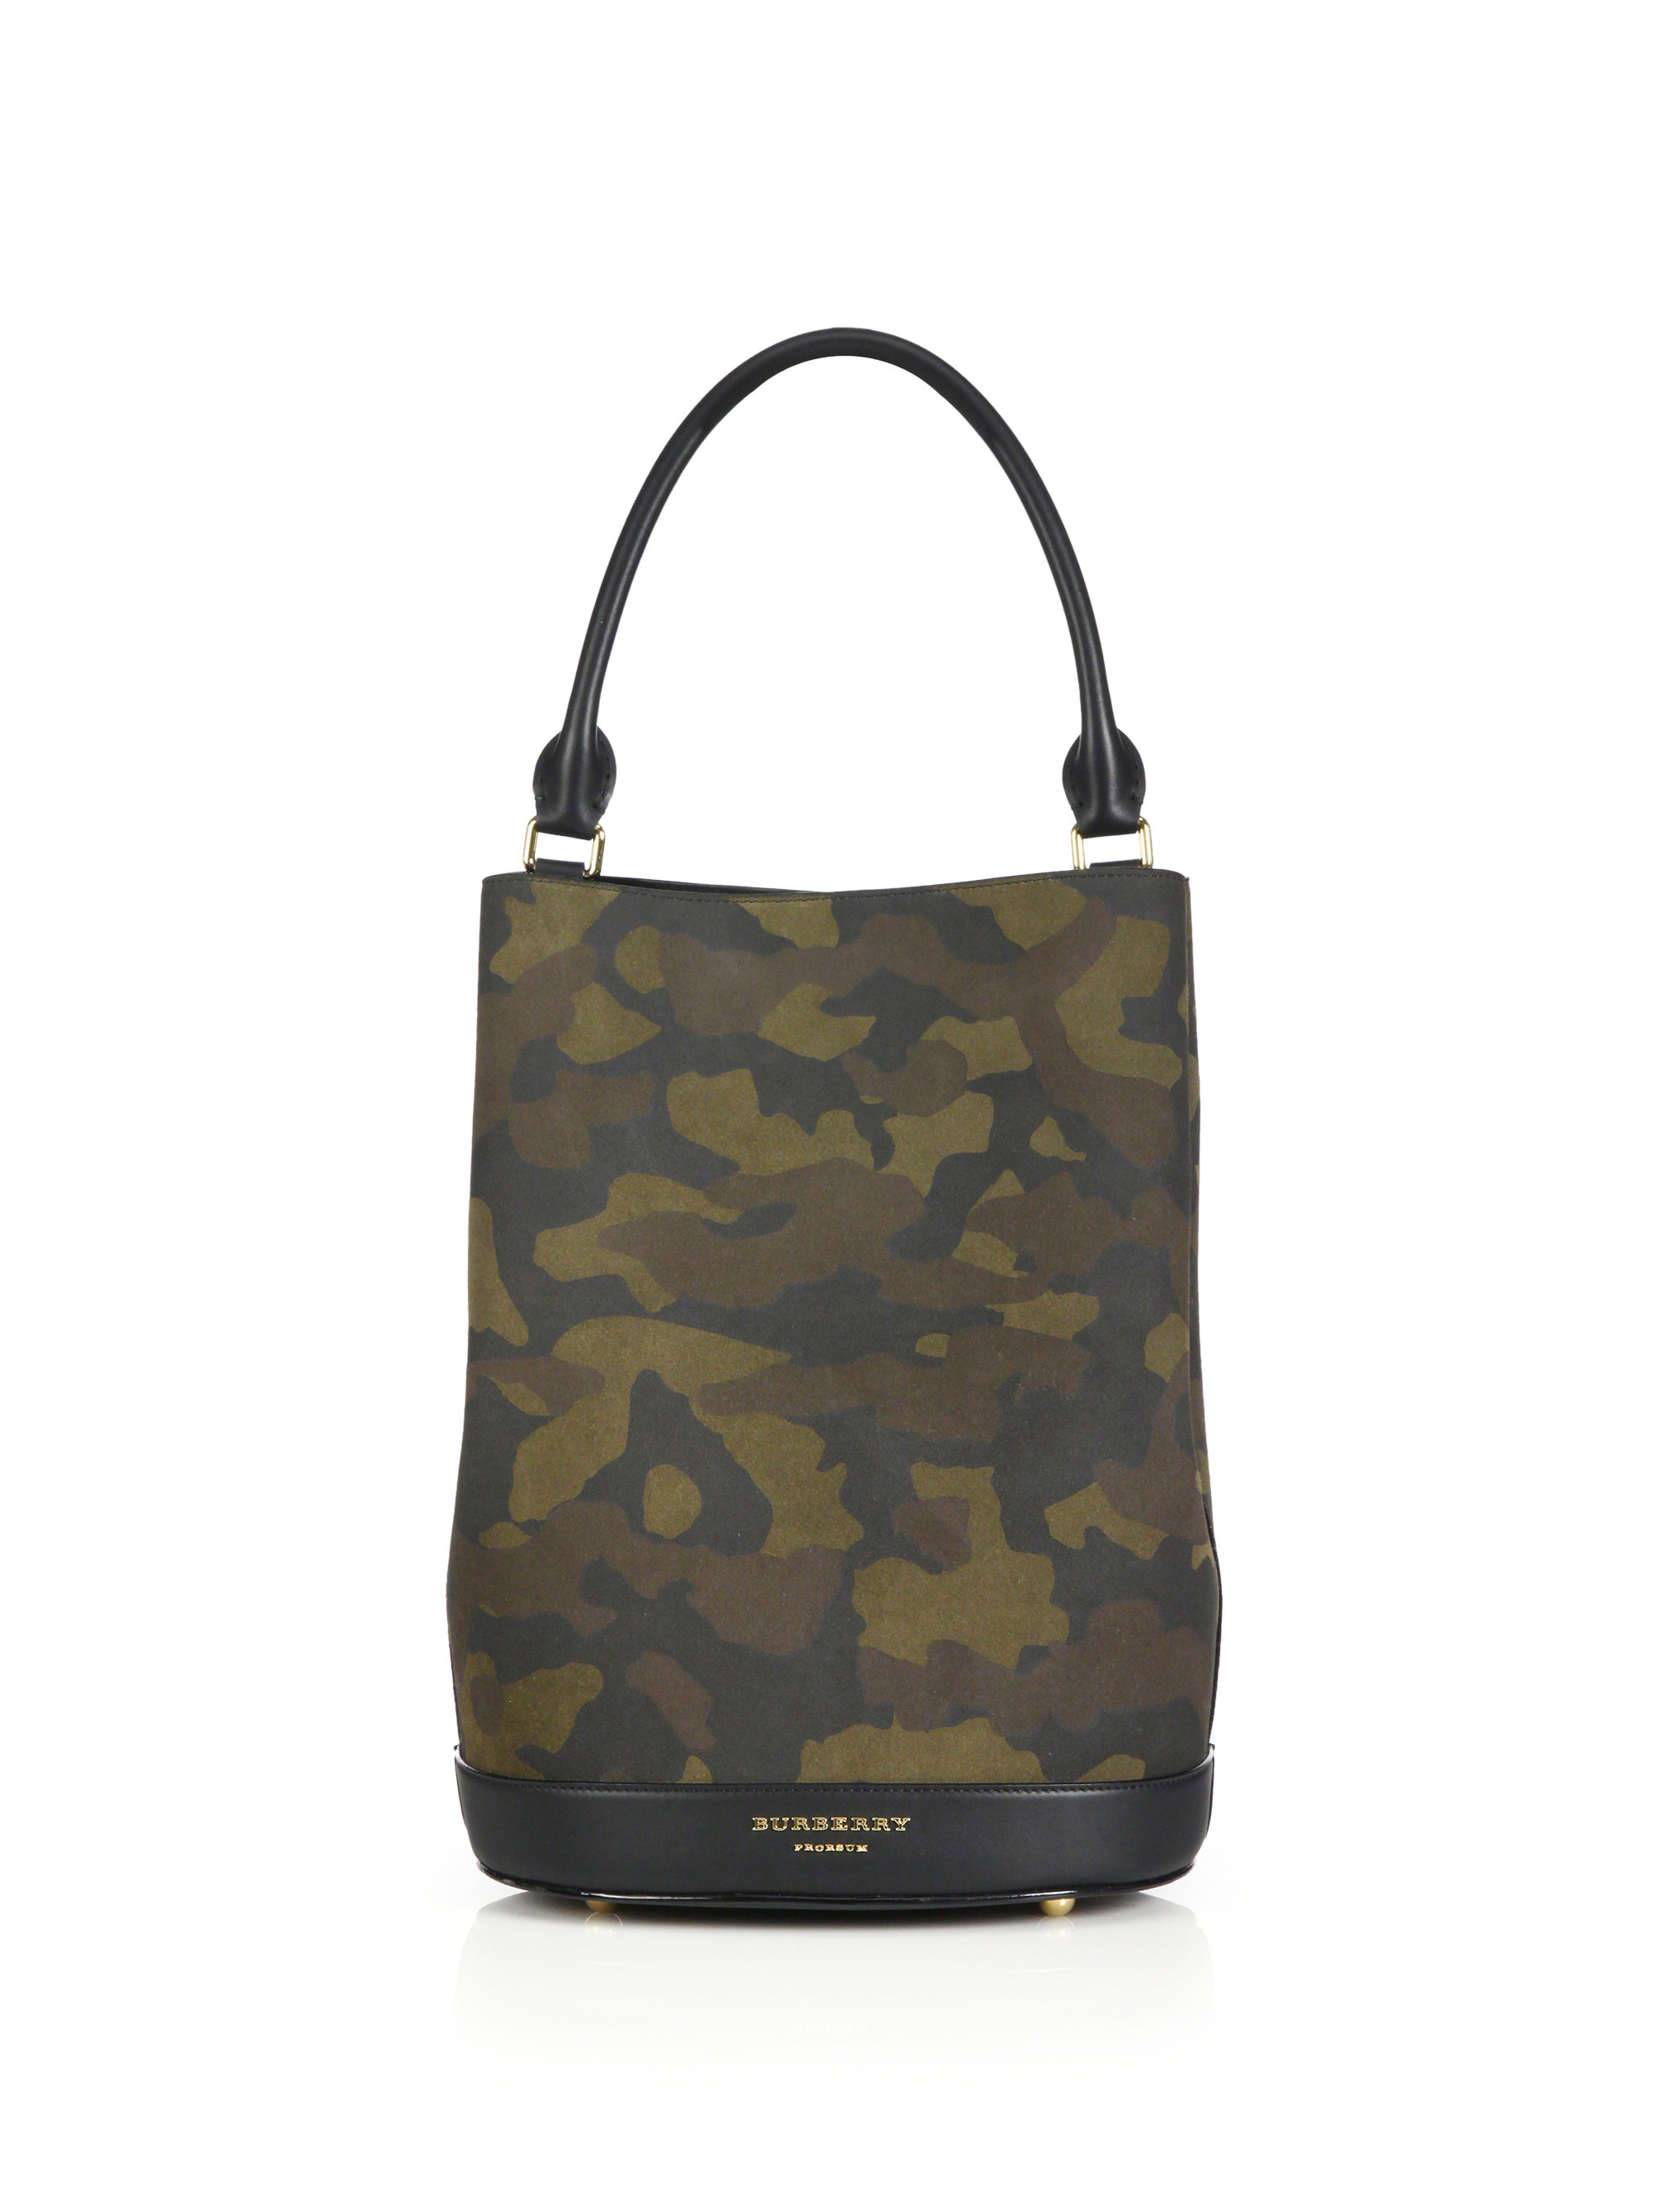 Lyst - Burberry Camouflage Leather Bucket Bag in Green 4fa9d83097357